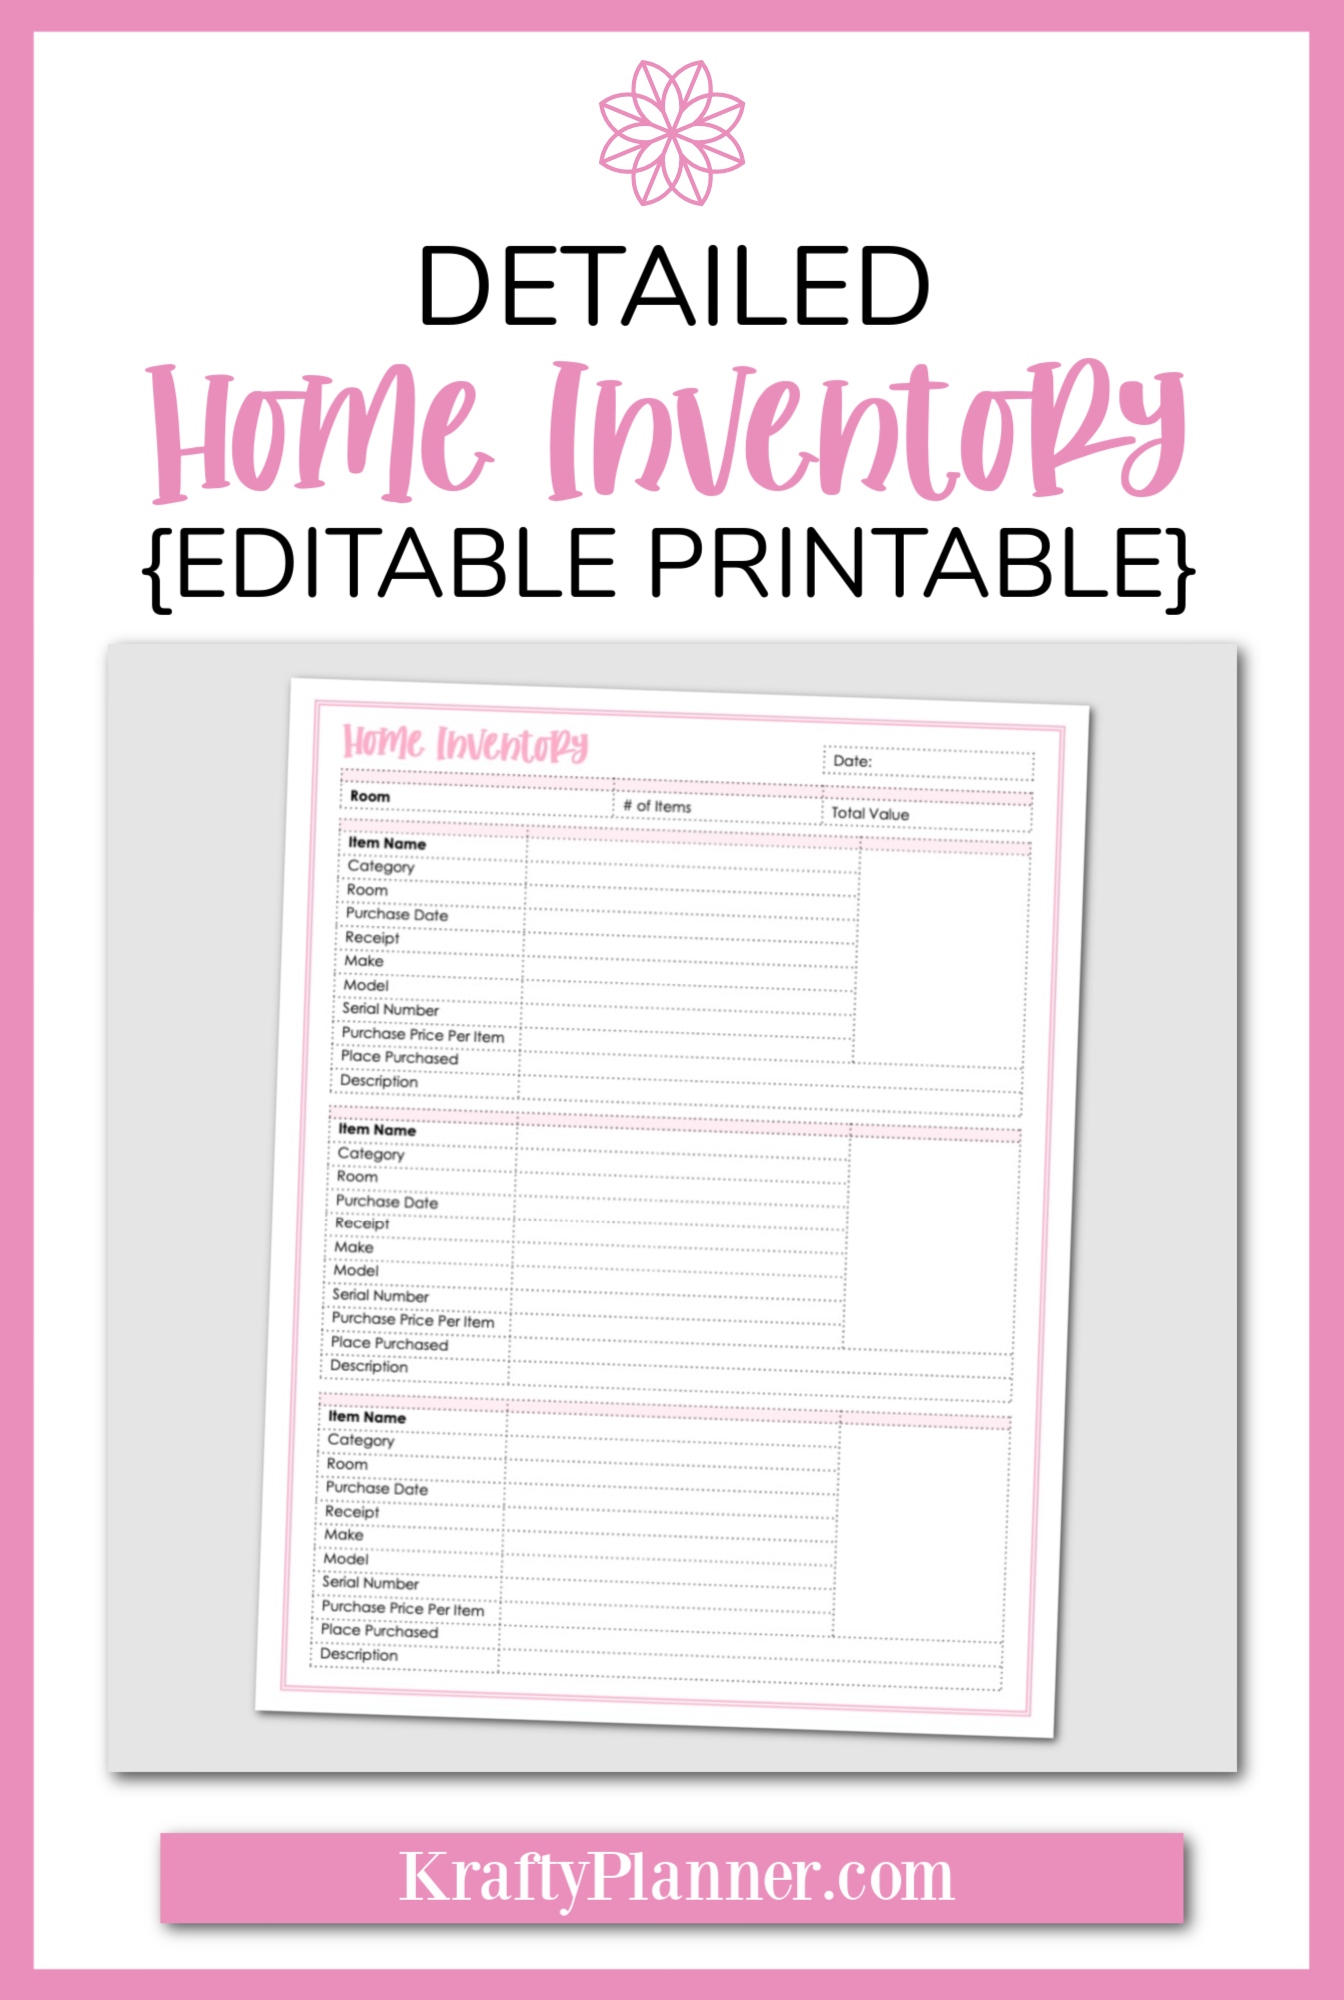 Detailed Home Inventory Add-On {Editable Printable} PIN 2.png